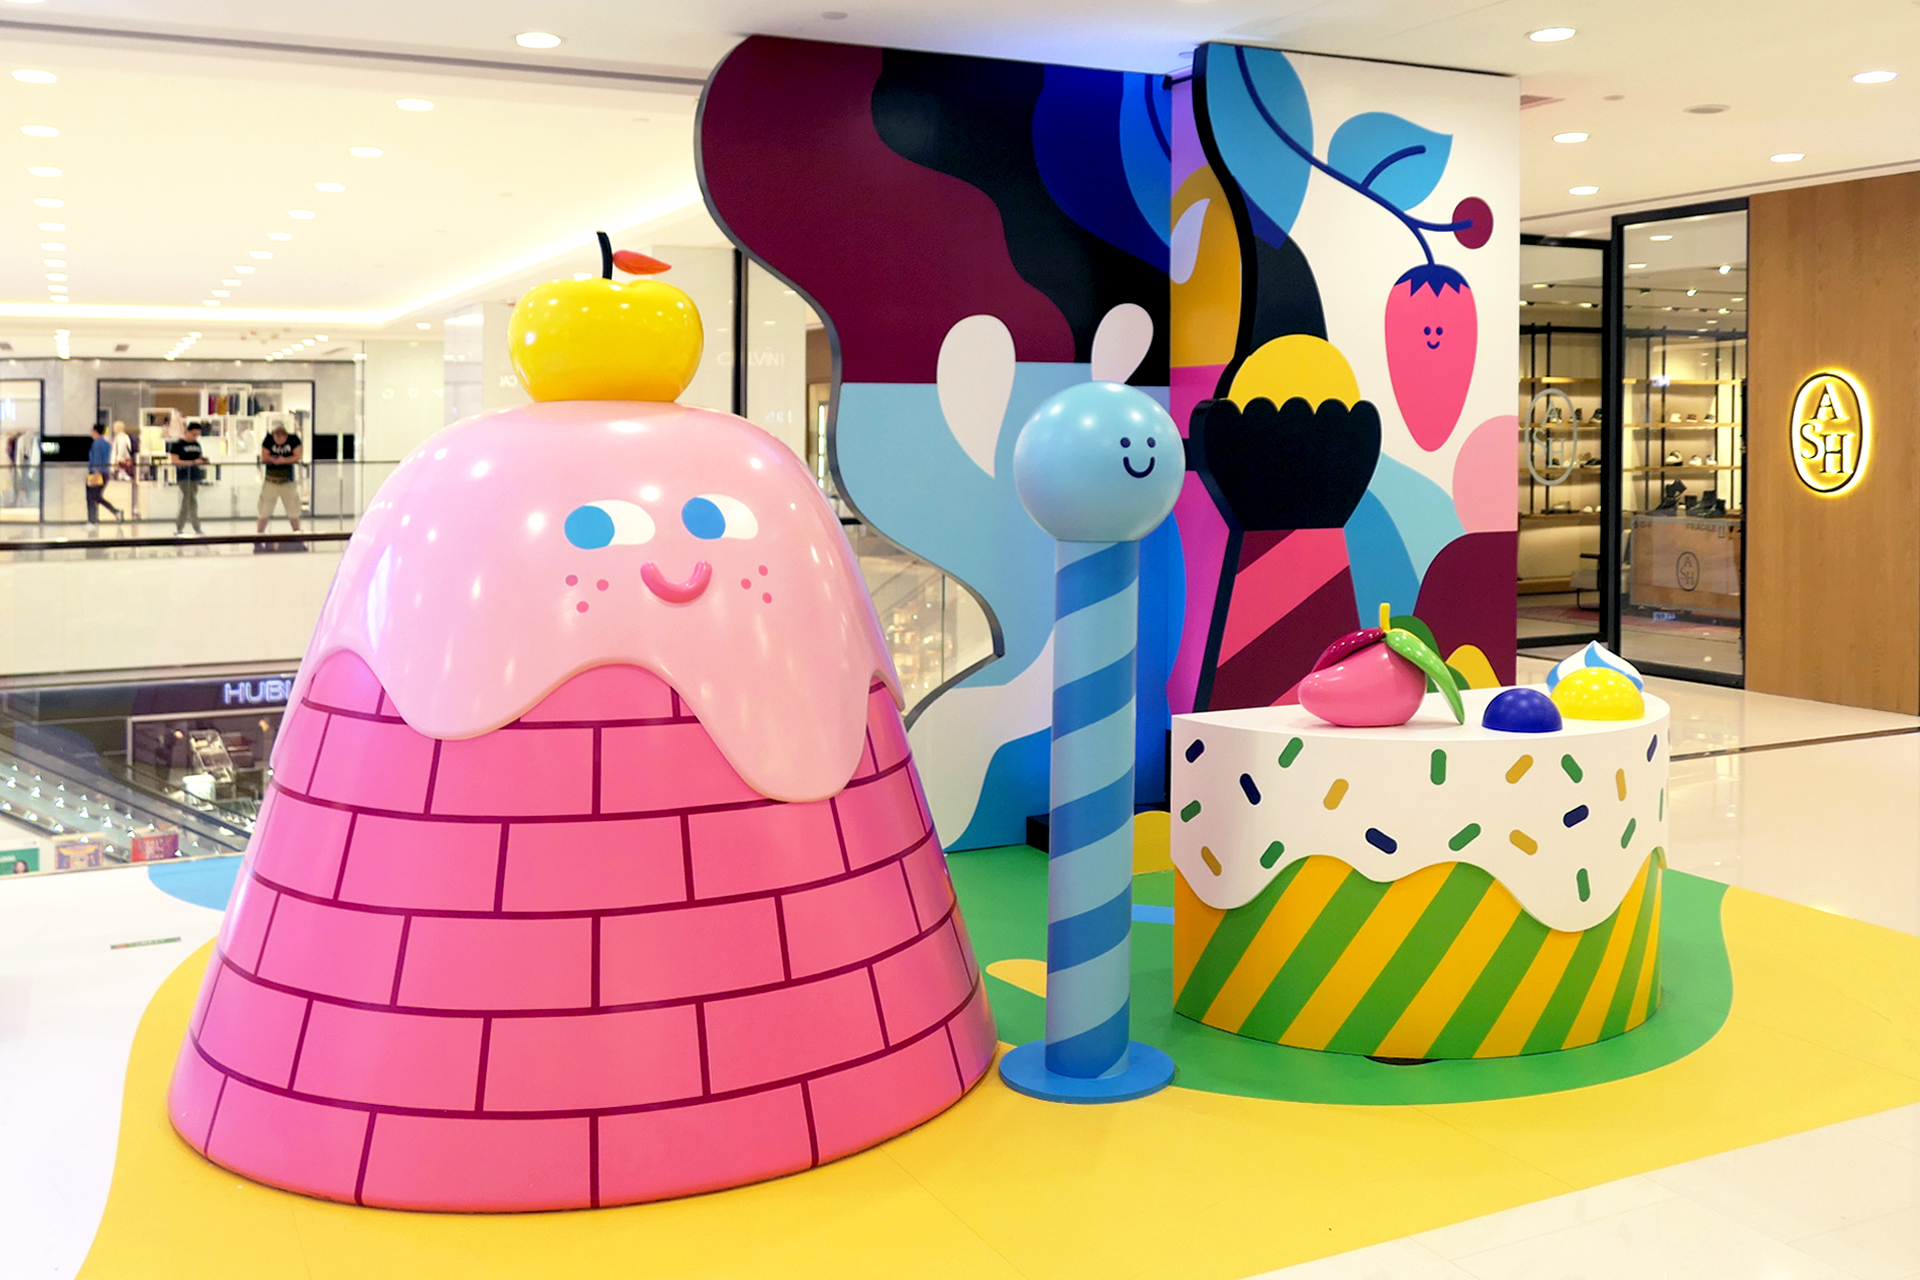 Hedof's illustration and 3D installation for LCX shopping mall, Hong Kong